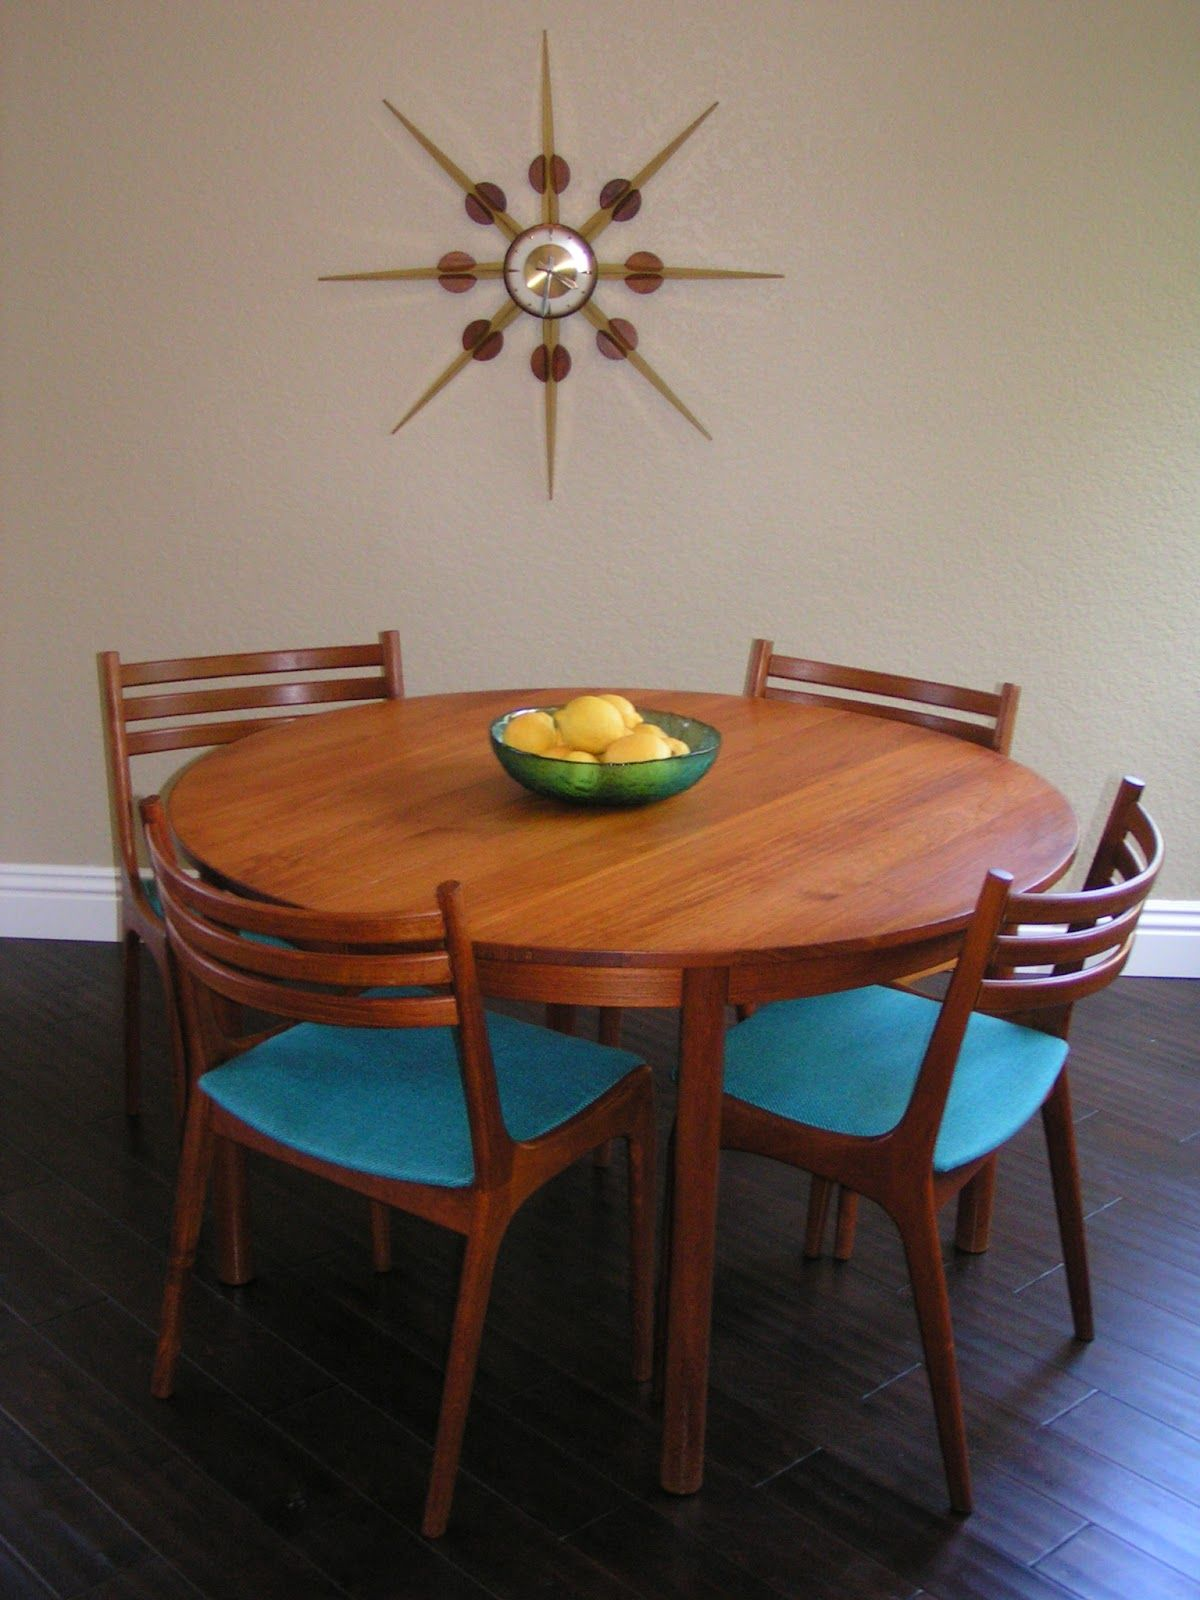 Sleek And Simple Lines Vintage Danish Teak Round Dining Table Six Chairs Two Leaves